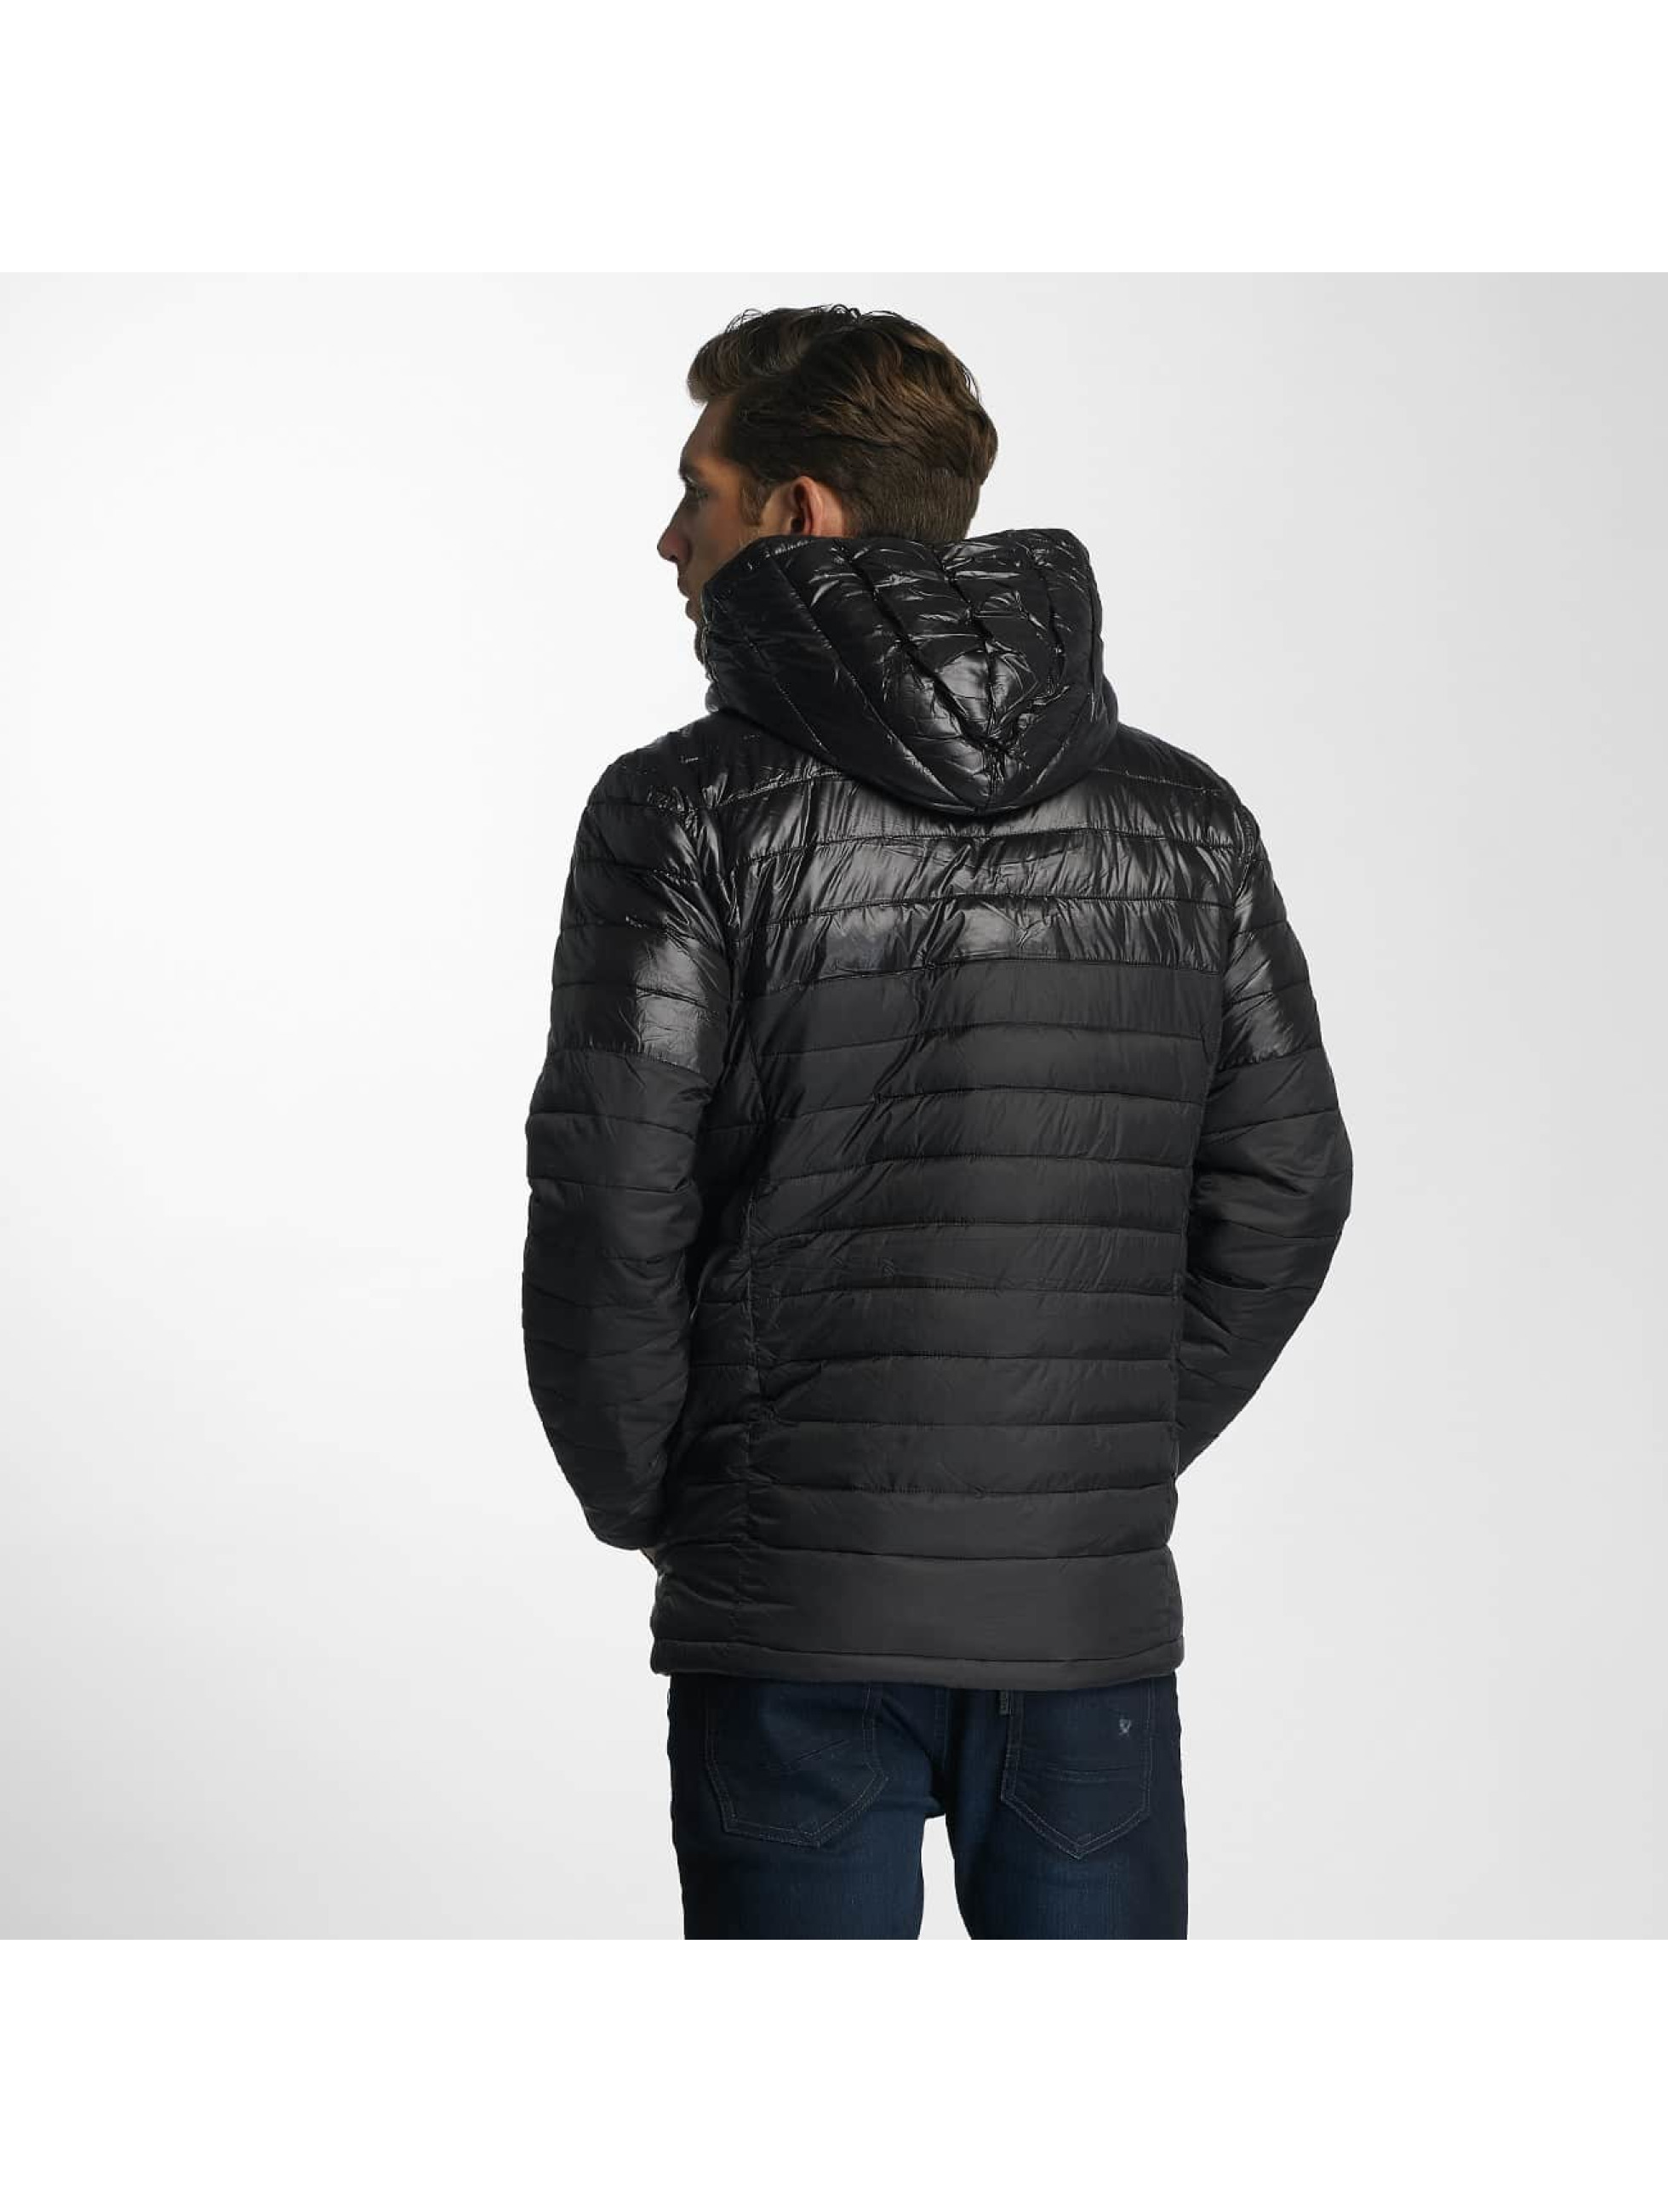 Paris Premium Winter Jacket Puffy black